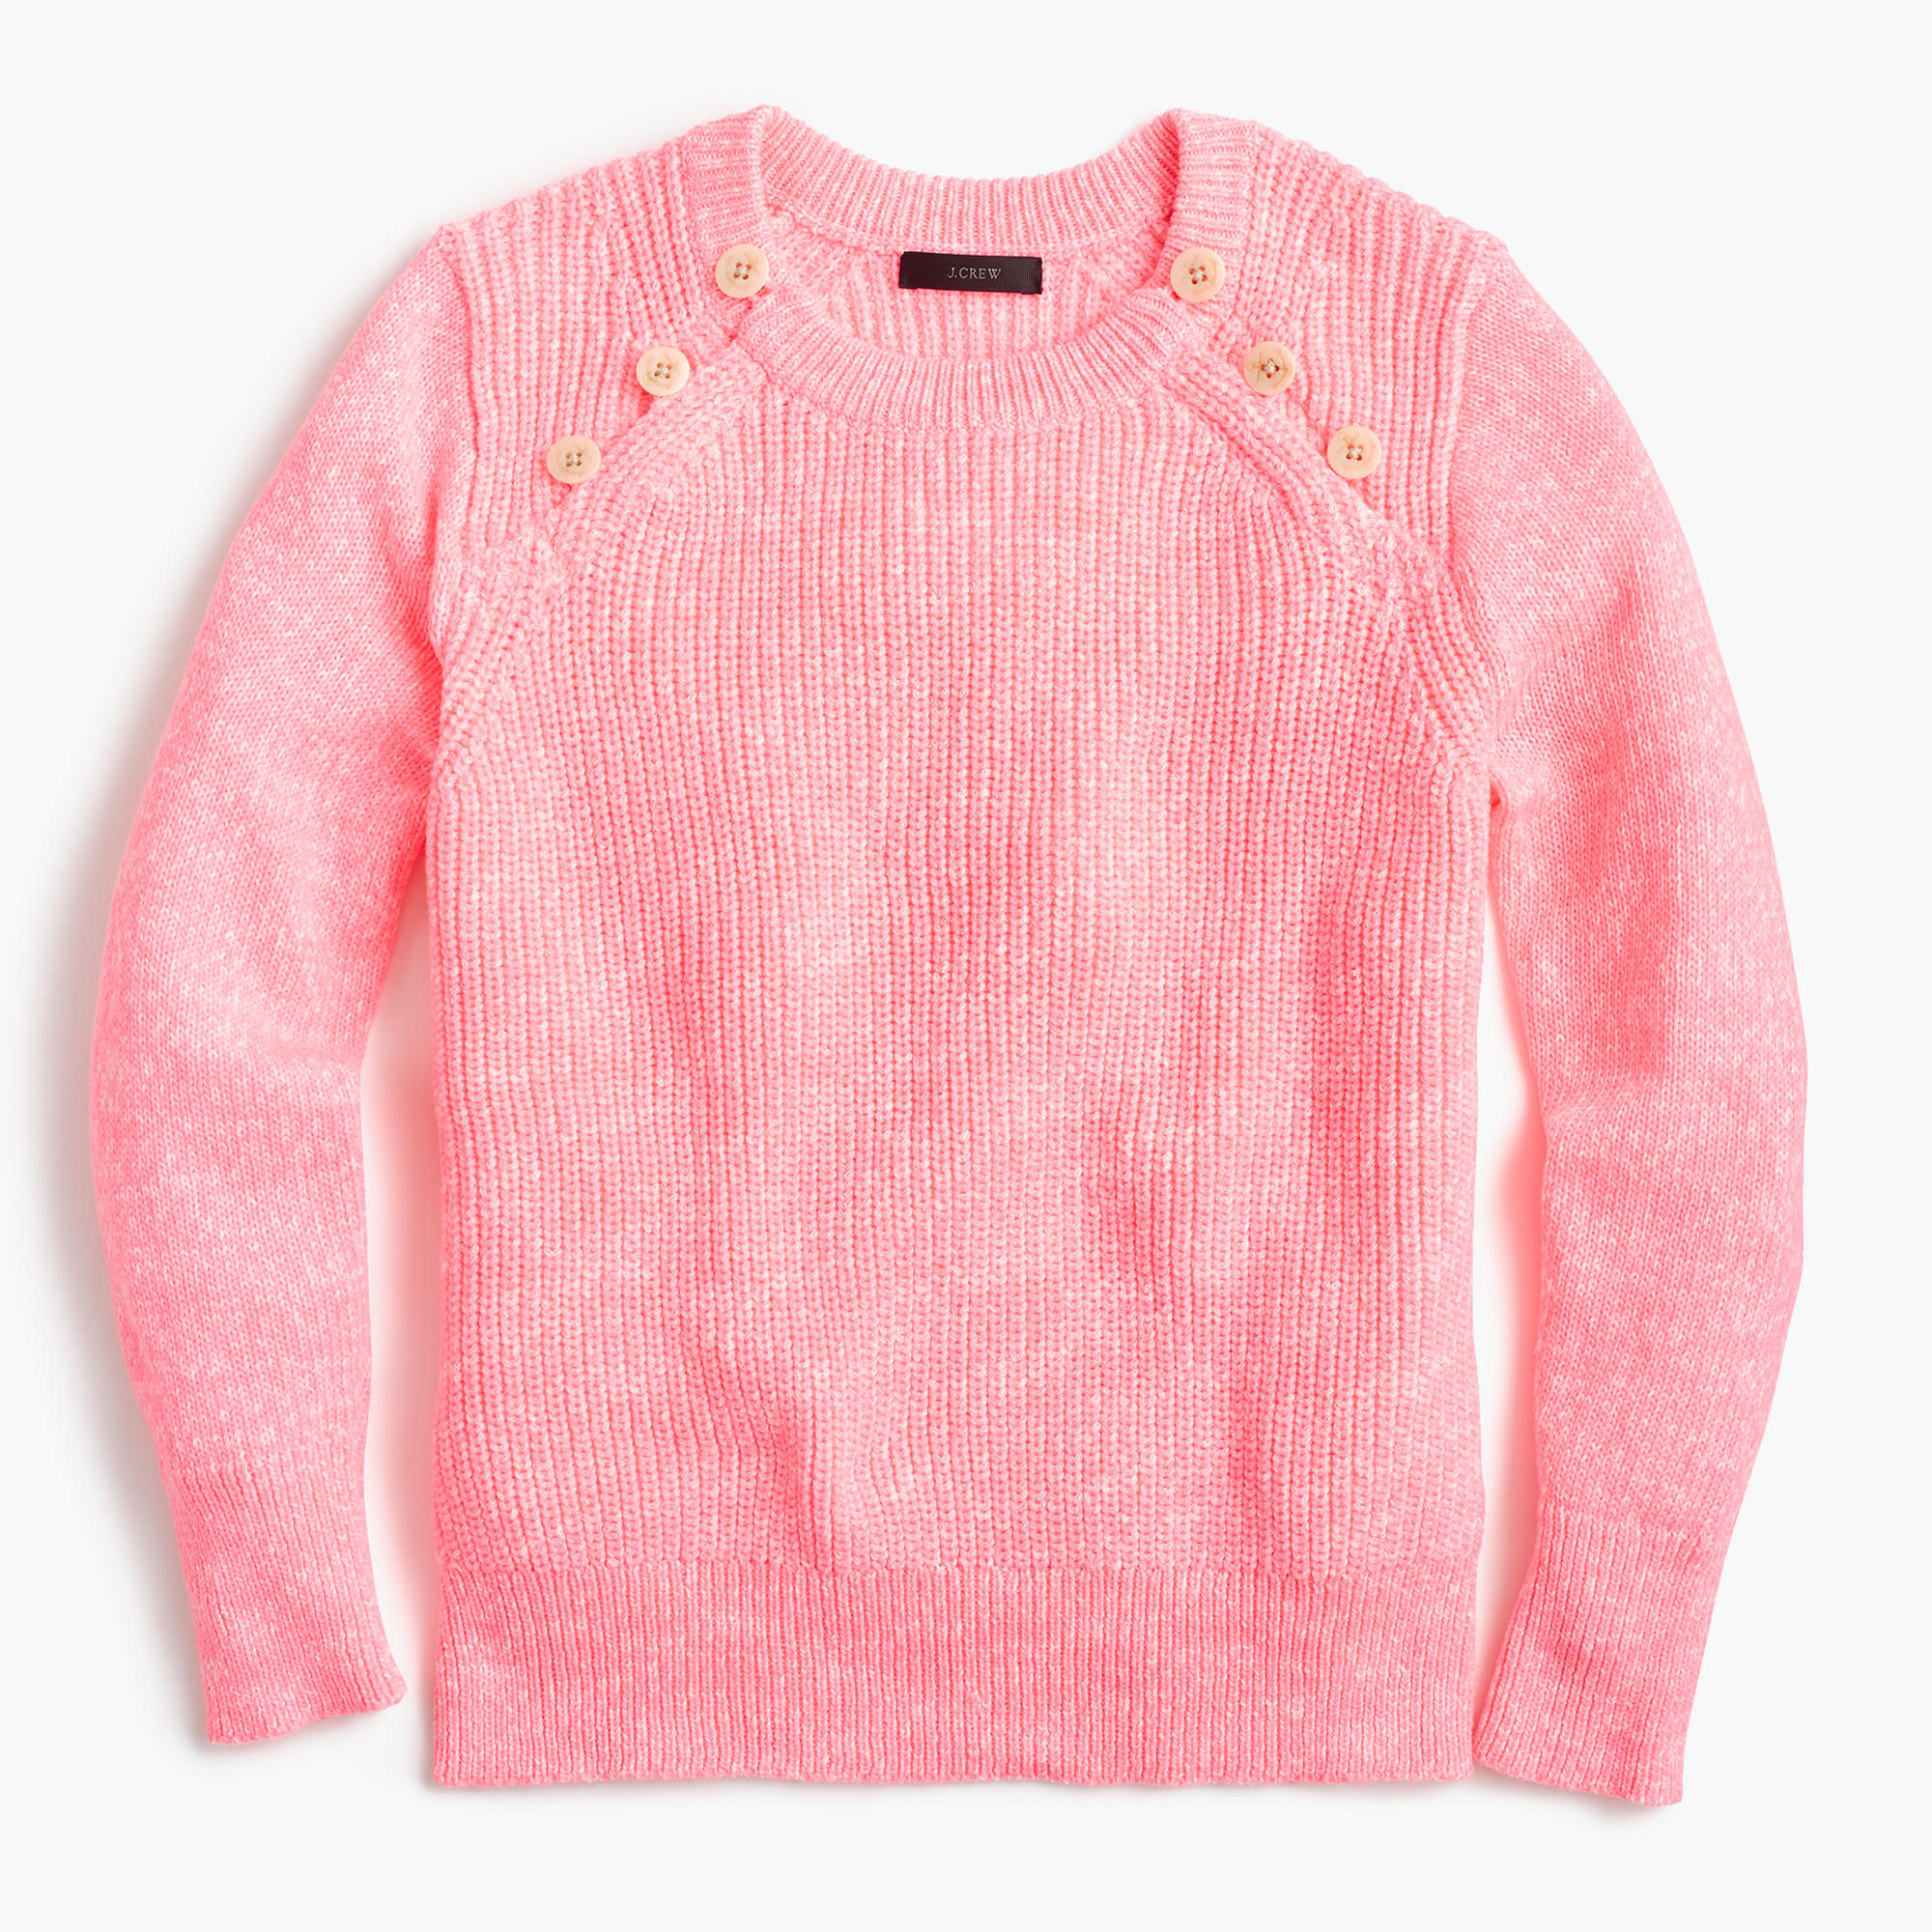 Textured Cotton Sweater With Anchor Buttons In Variegated Pink ...